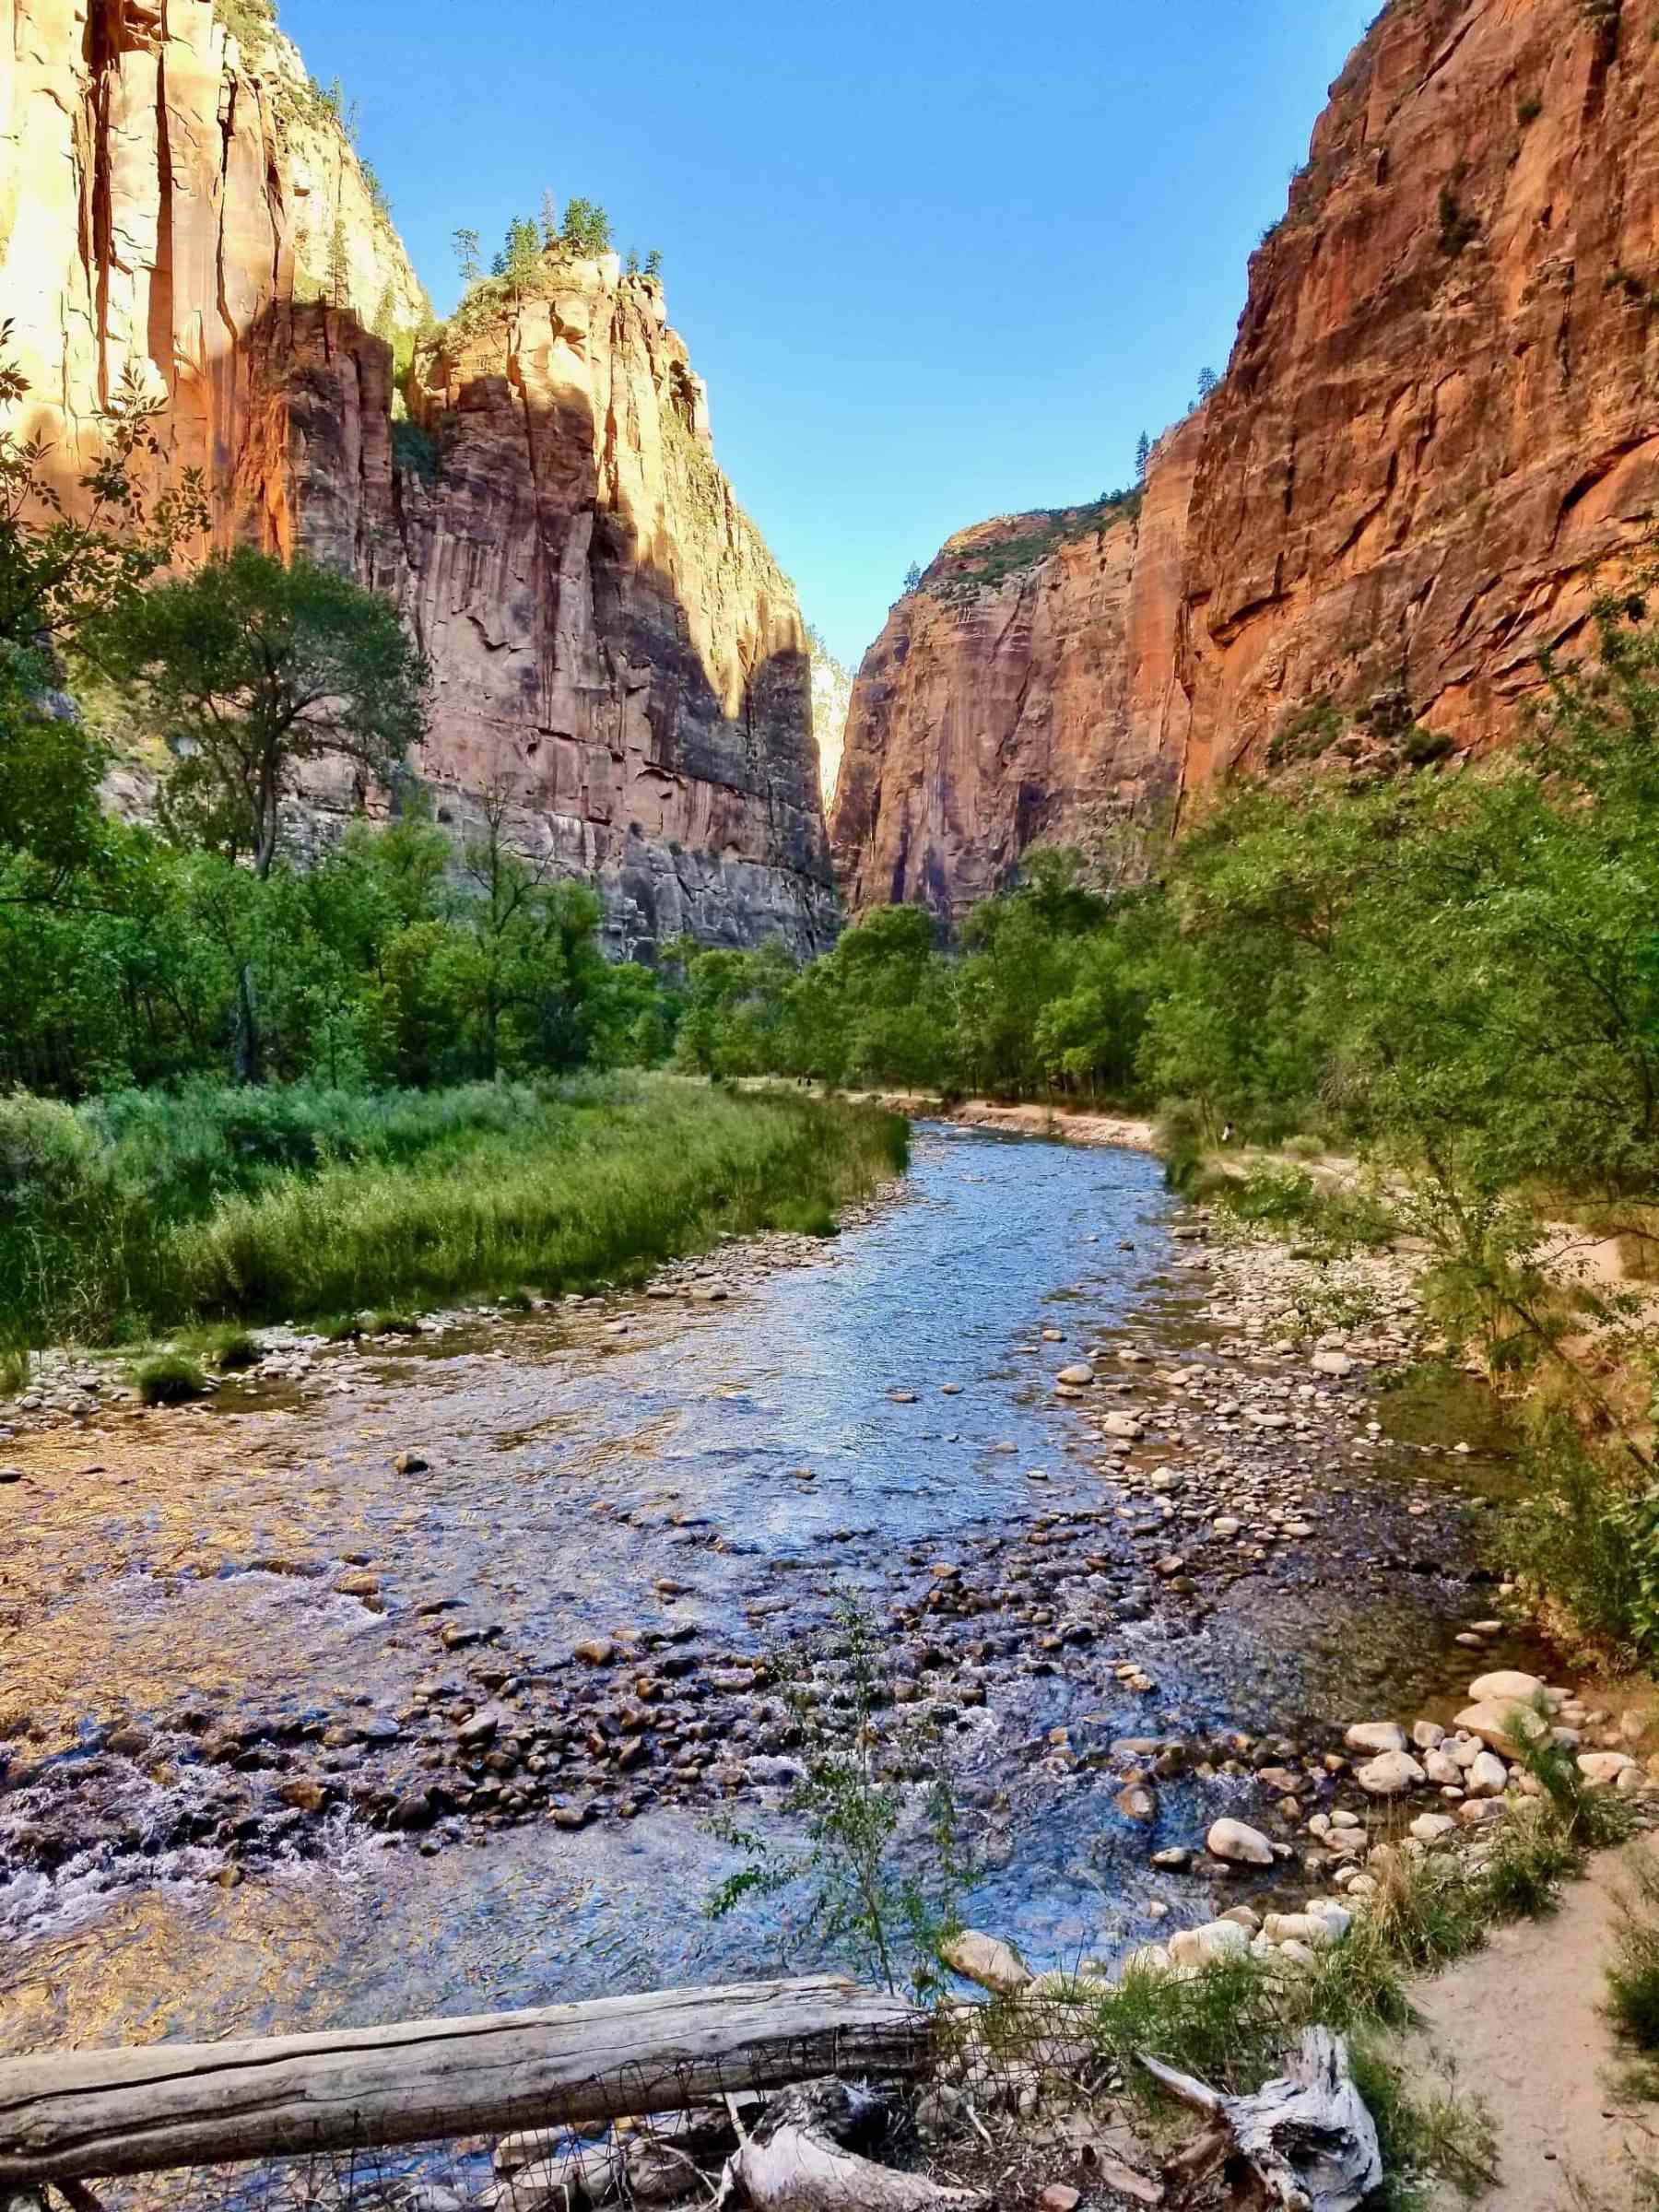 Zion Canyon - Zion National Park